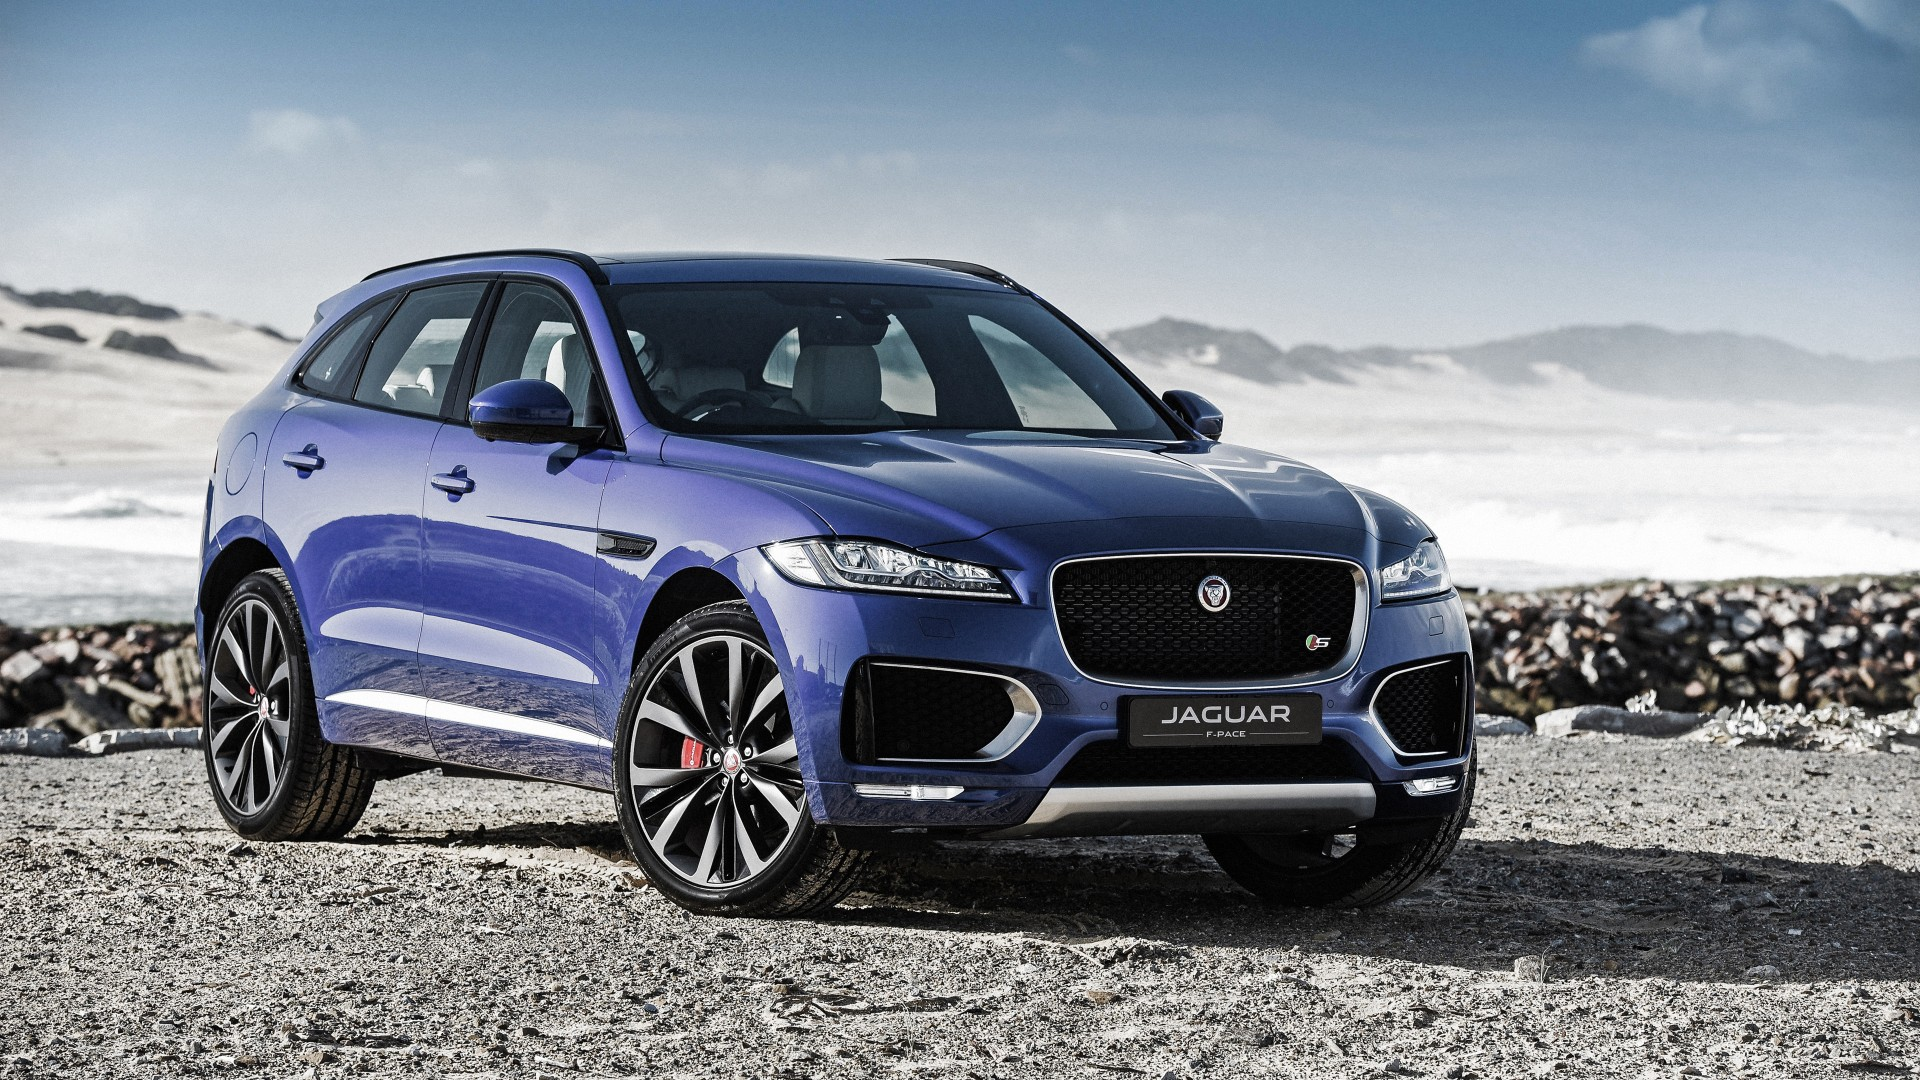 2017 jaguar f pace first edition wallpaper hd car - Cars hd wallpapers for laptop ...